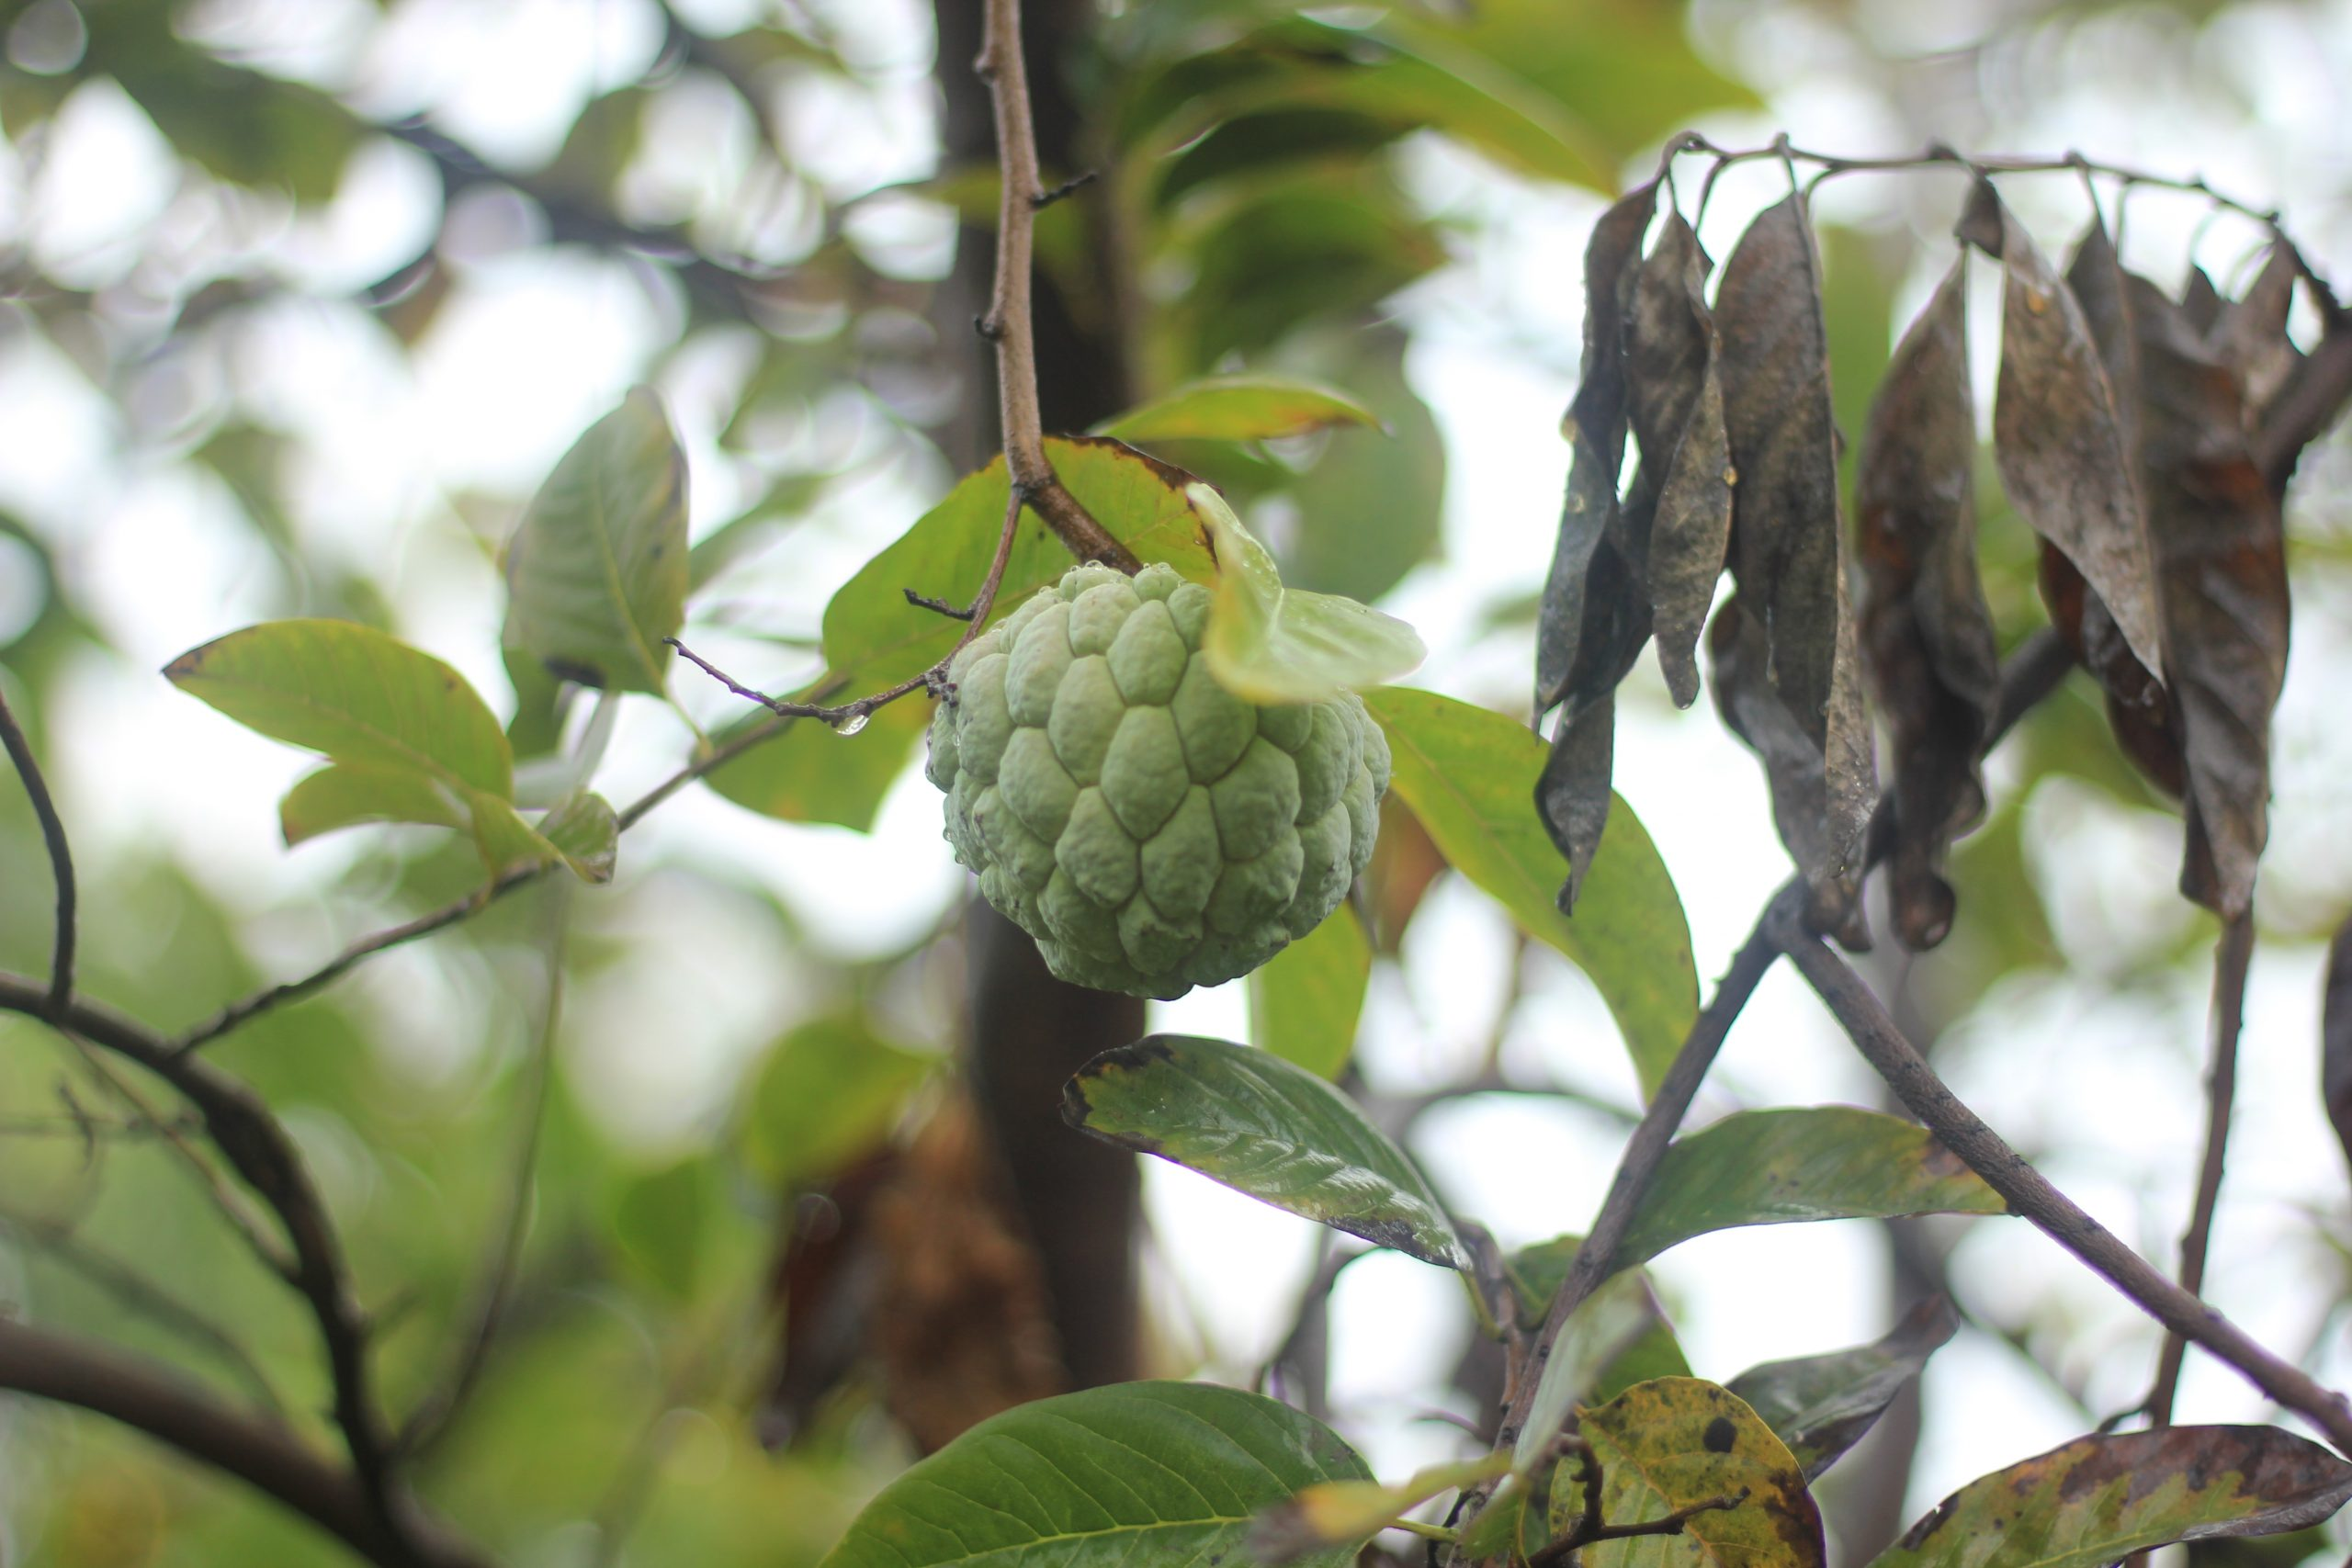 A custard apple hanging